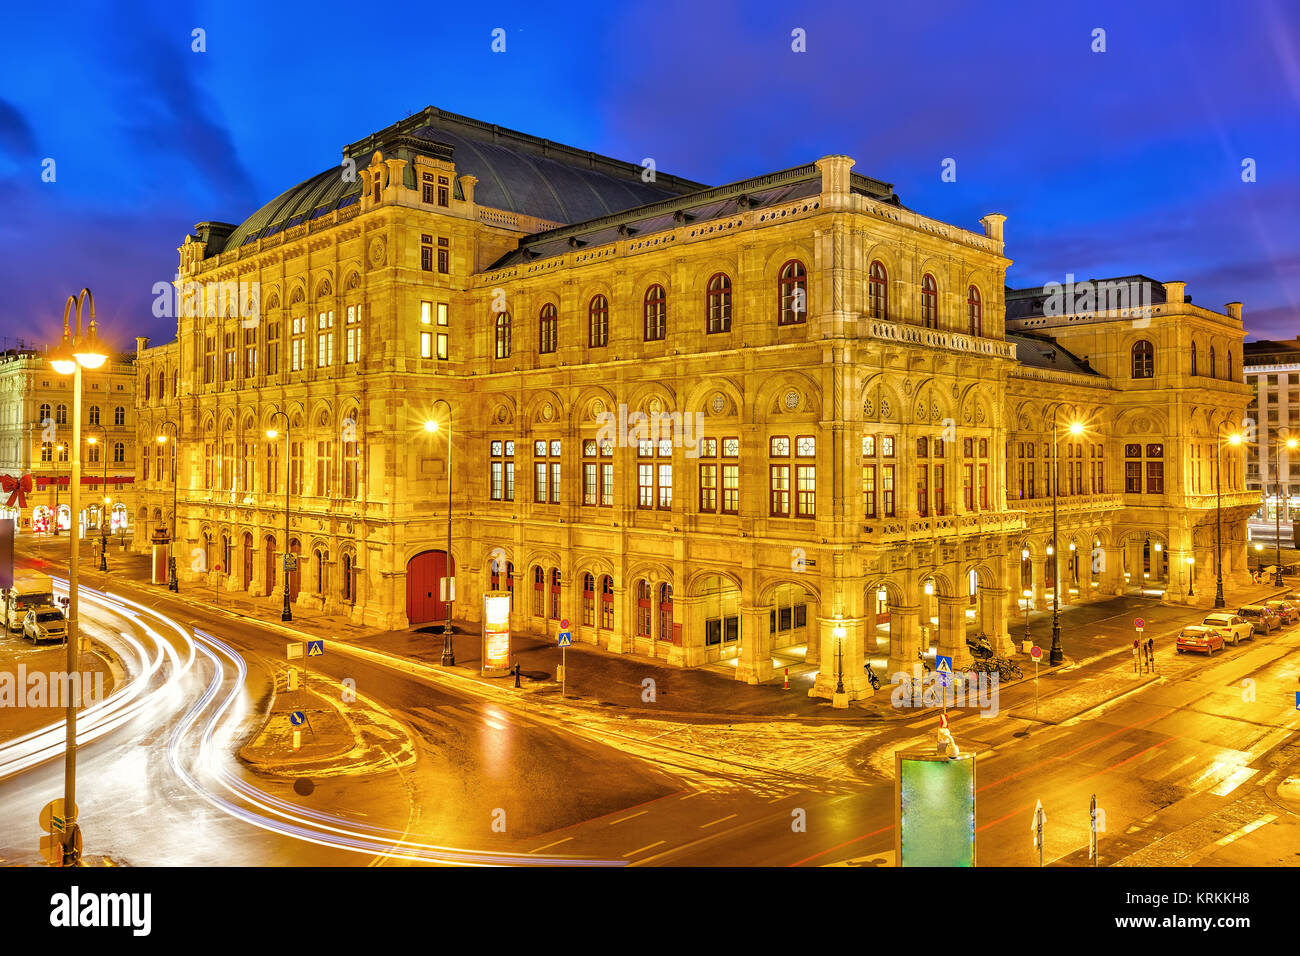 theather of kazan in russia Find cathedral our lady kazan 14 september stock images in hd and millions of other royalty free stock photos, illustrations, and vectors in the shutterstock collection.